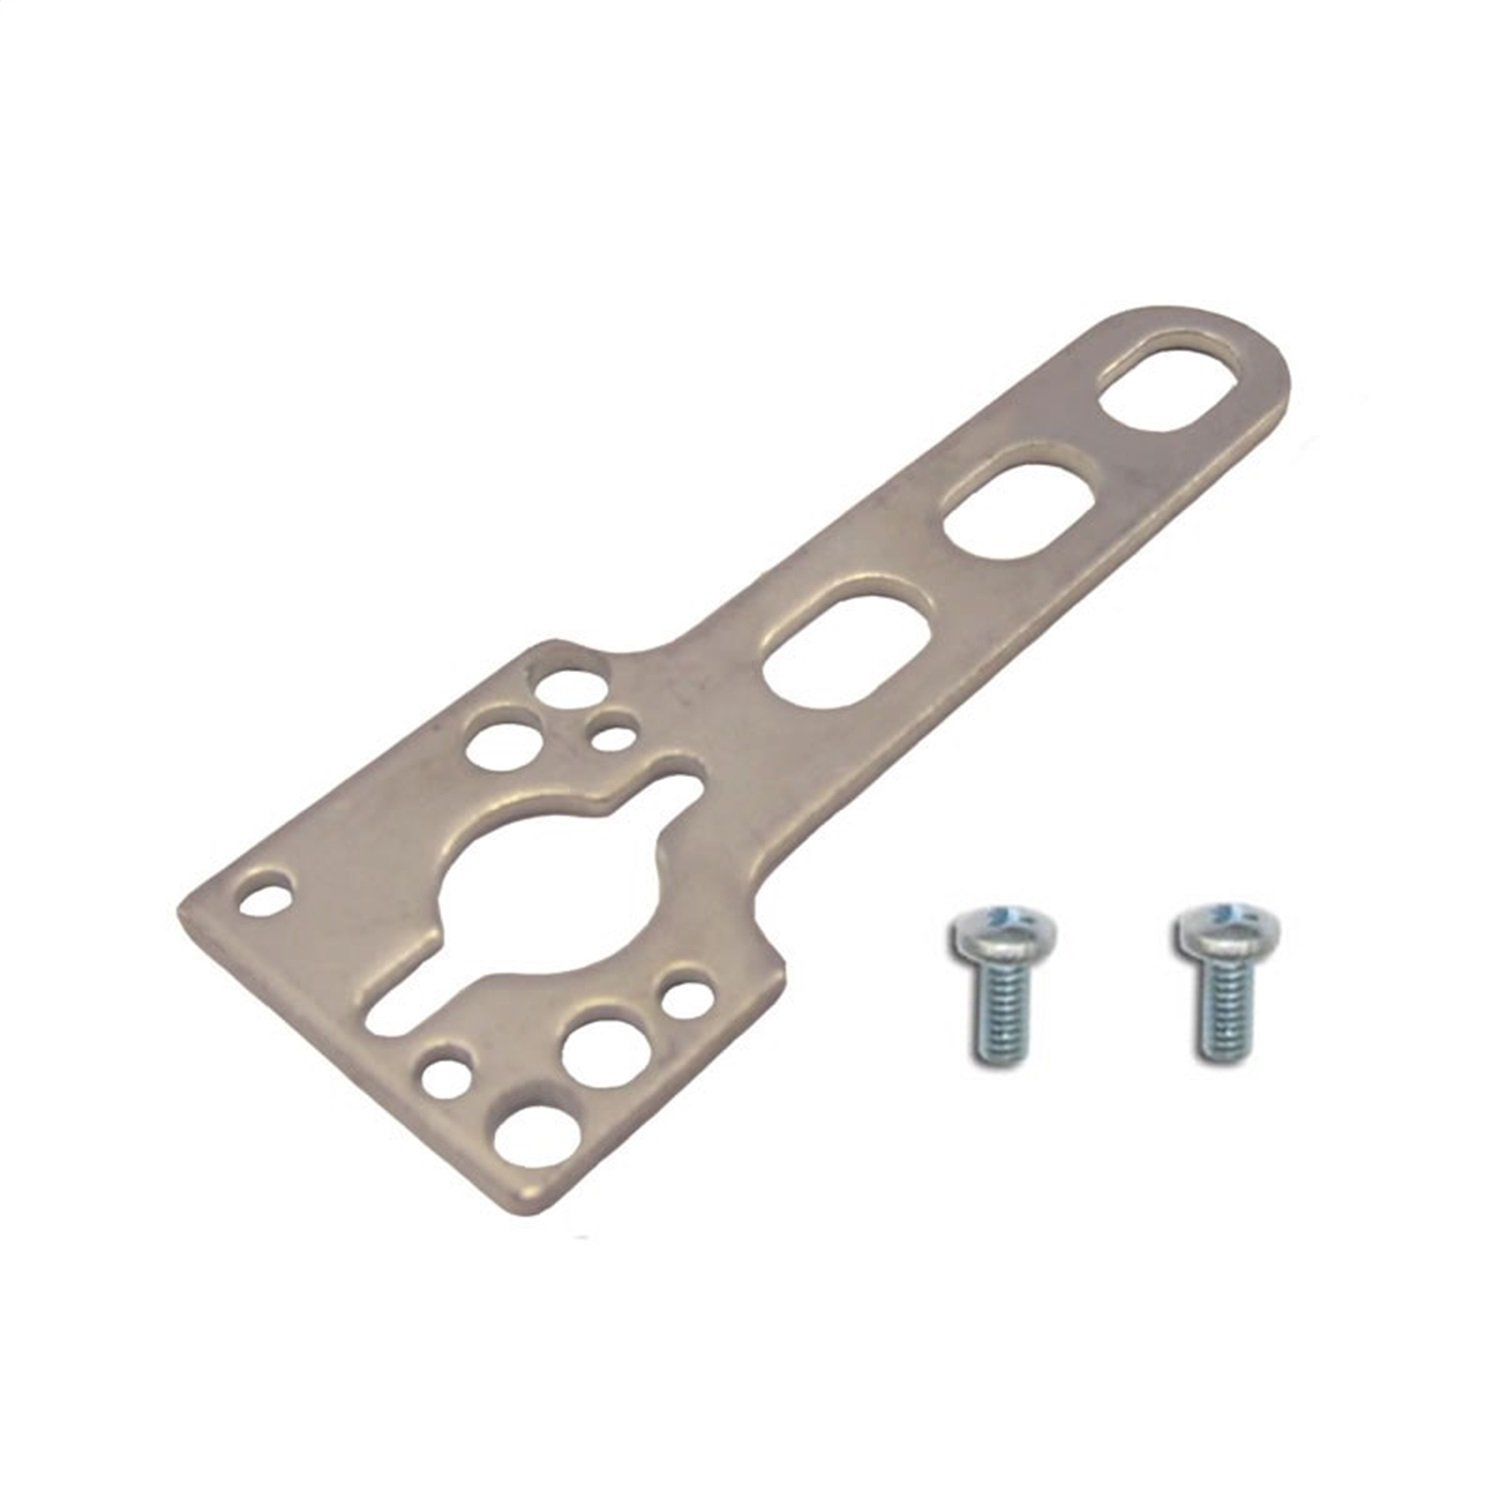 Nitrous Express 15709 Mounting Bracket Kit